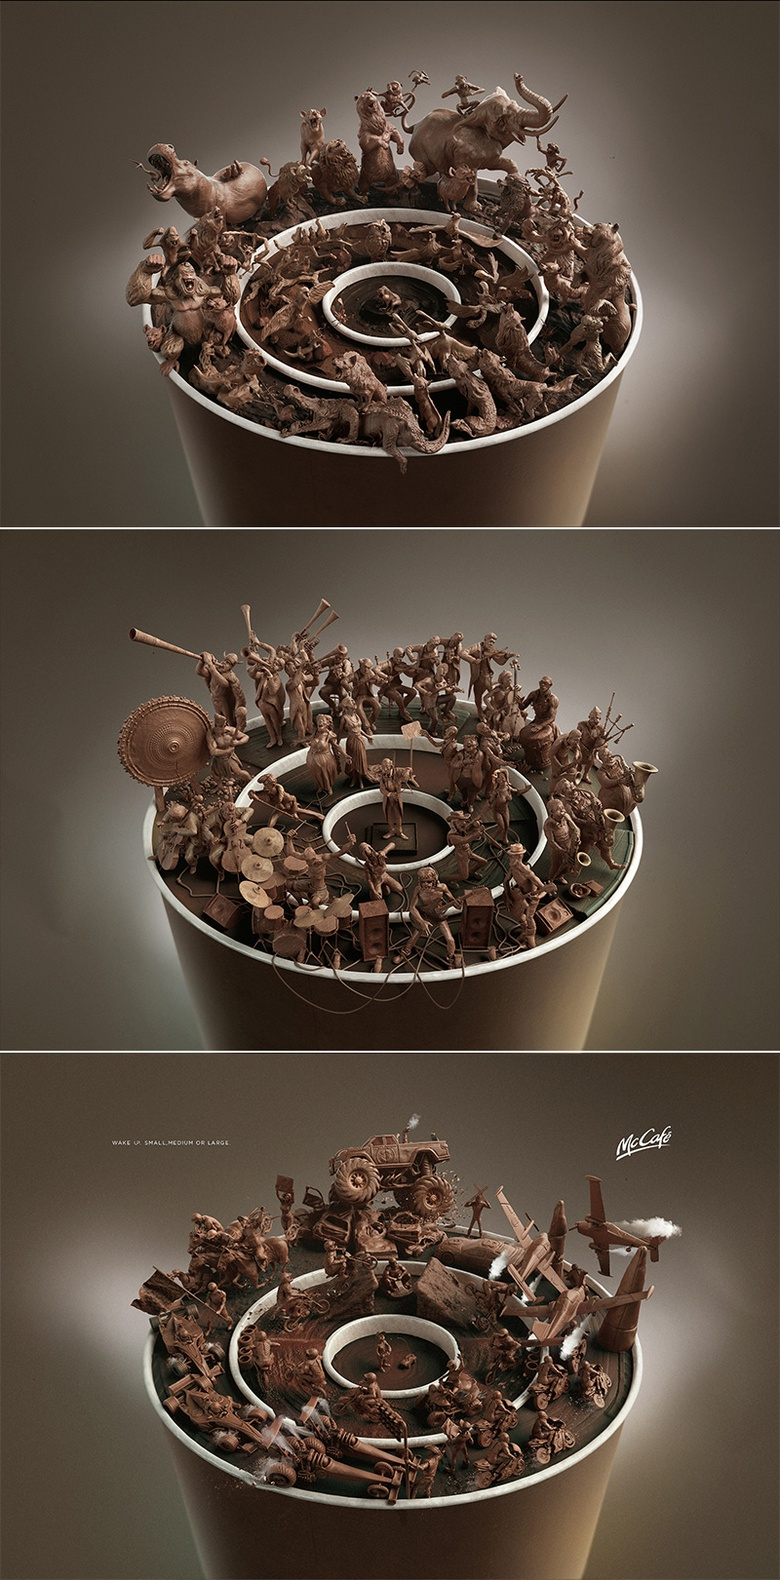 The complete set of visuals made for McDonald's